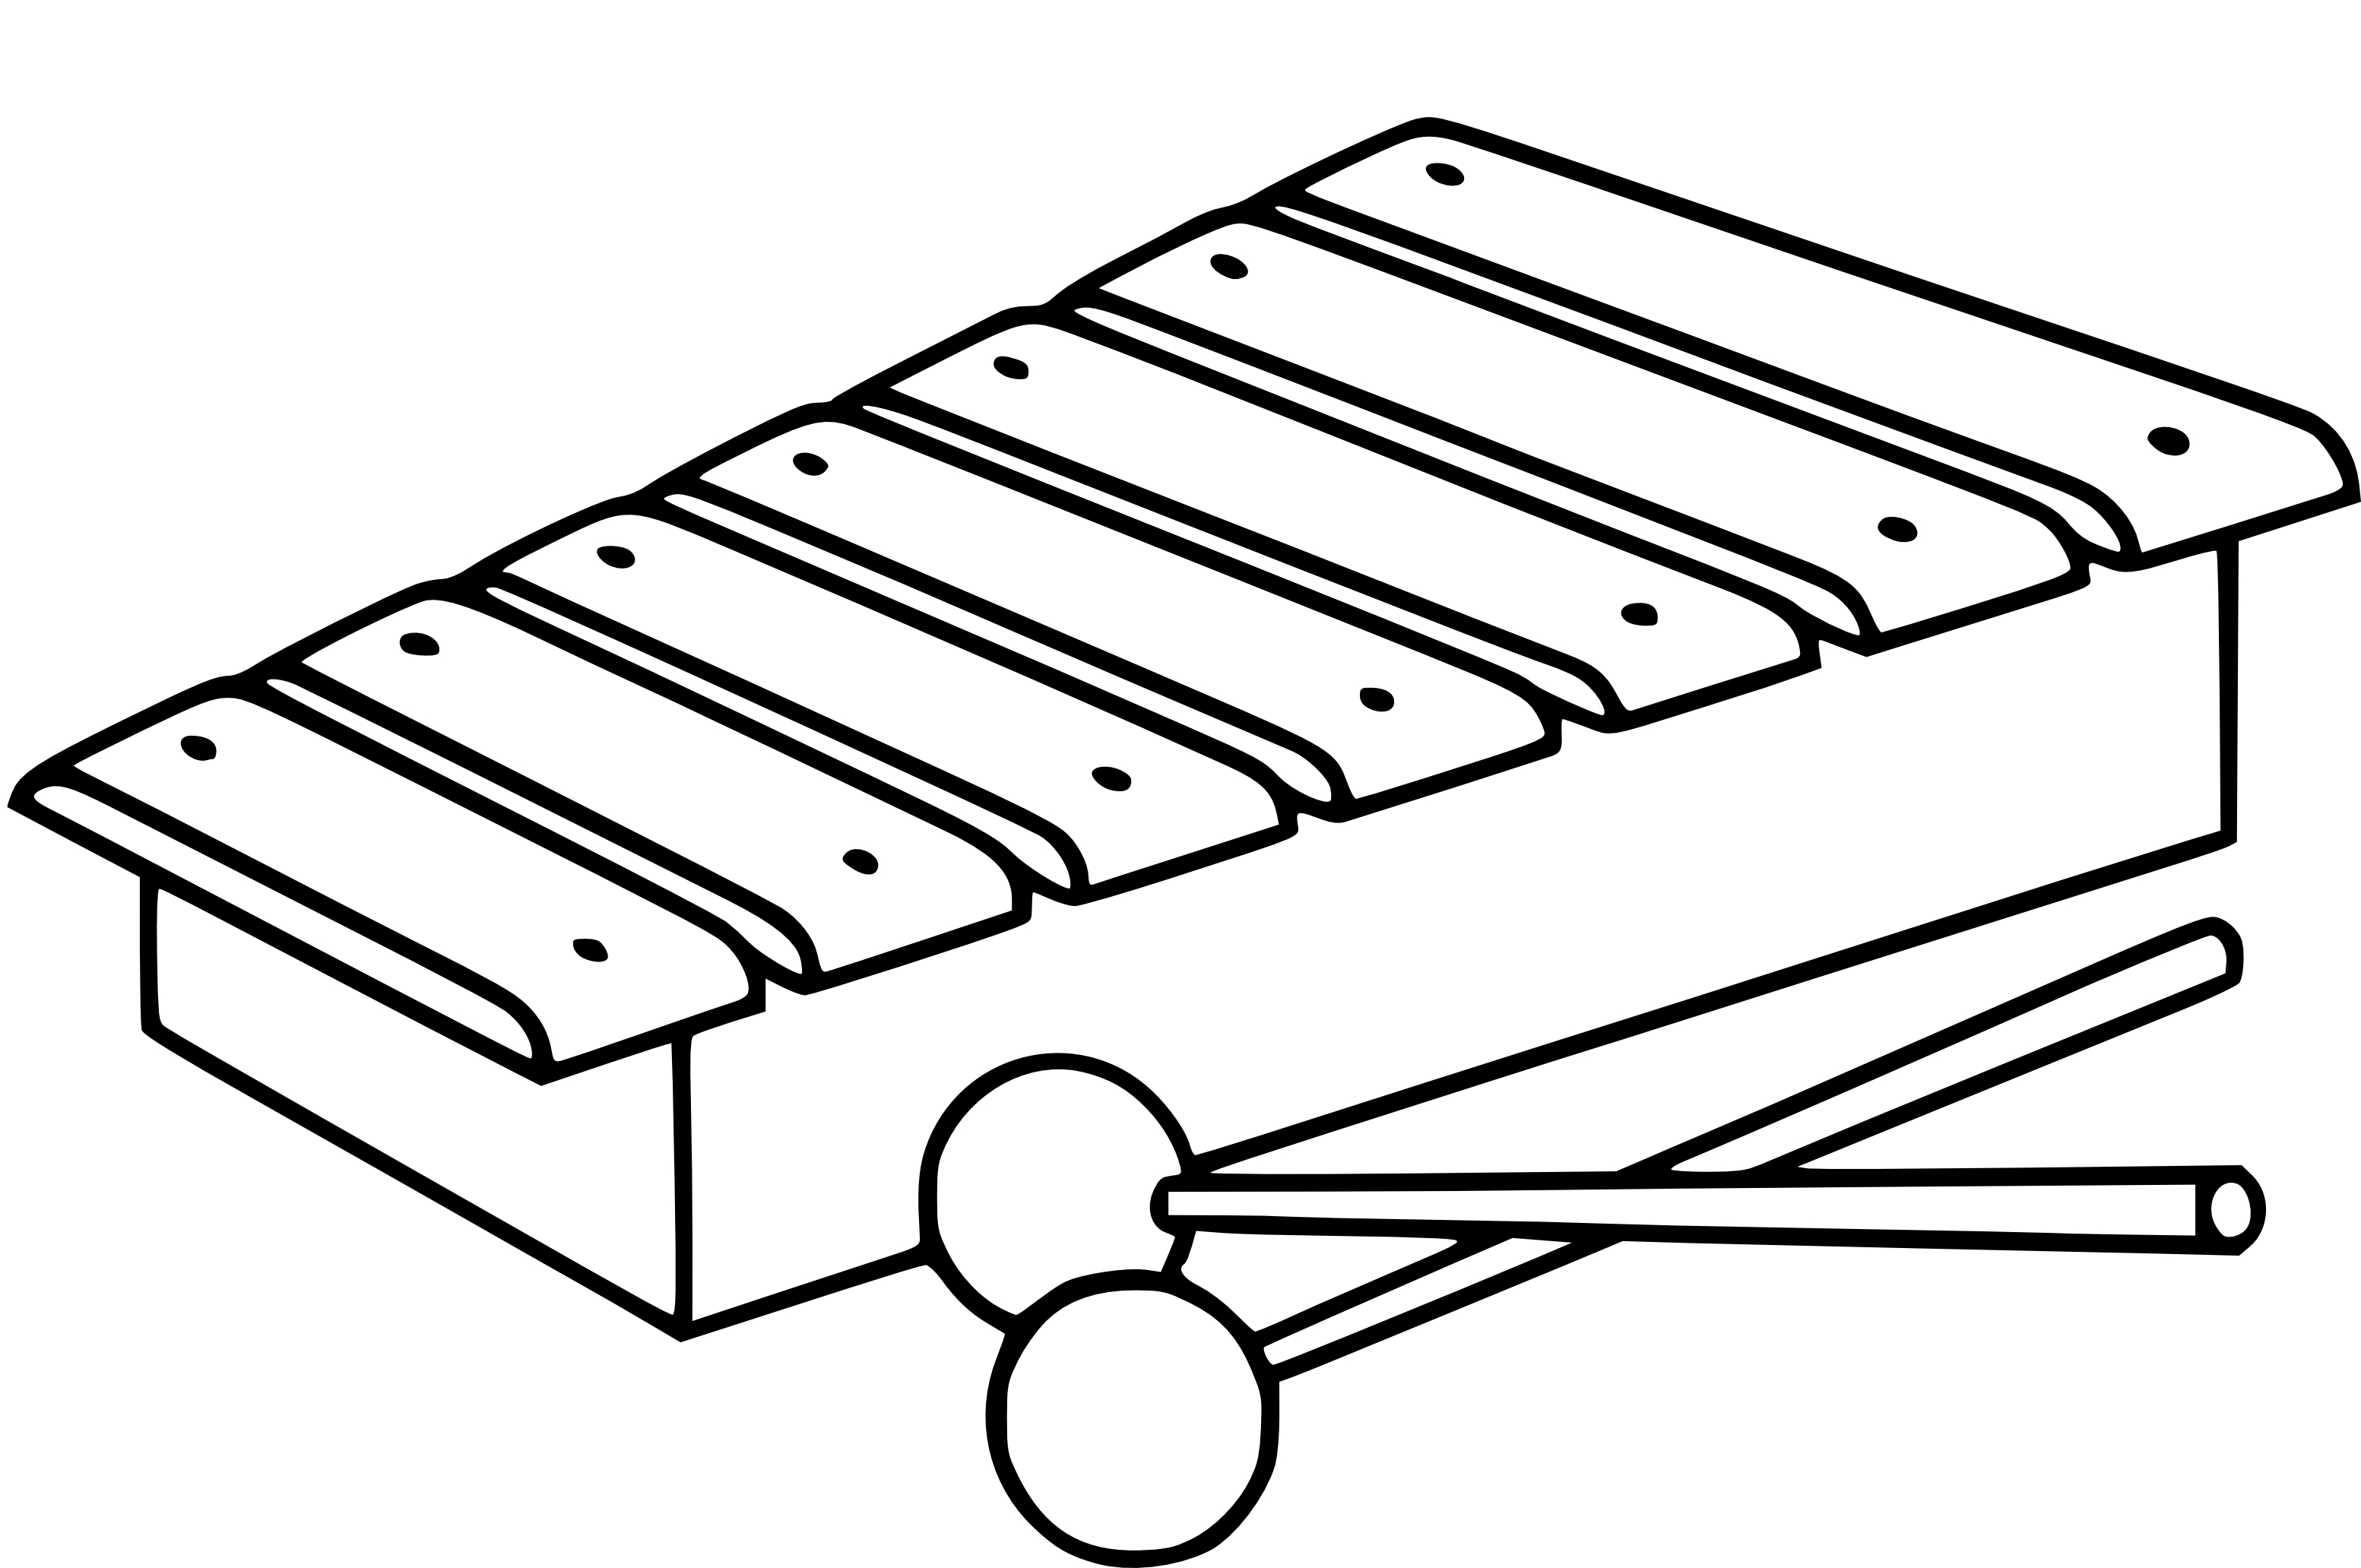 Marimba Colouring Pages Page 2 Sketch Coloring Page